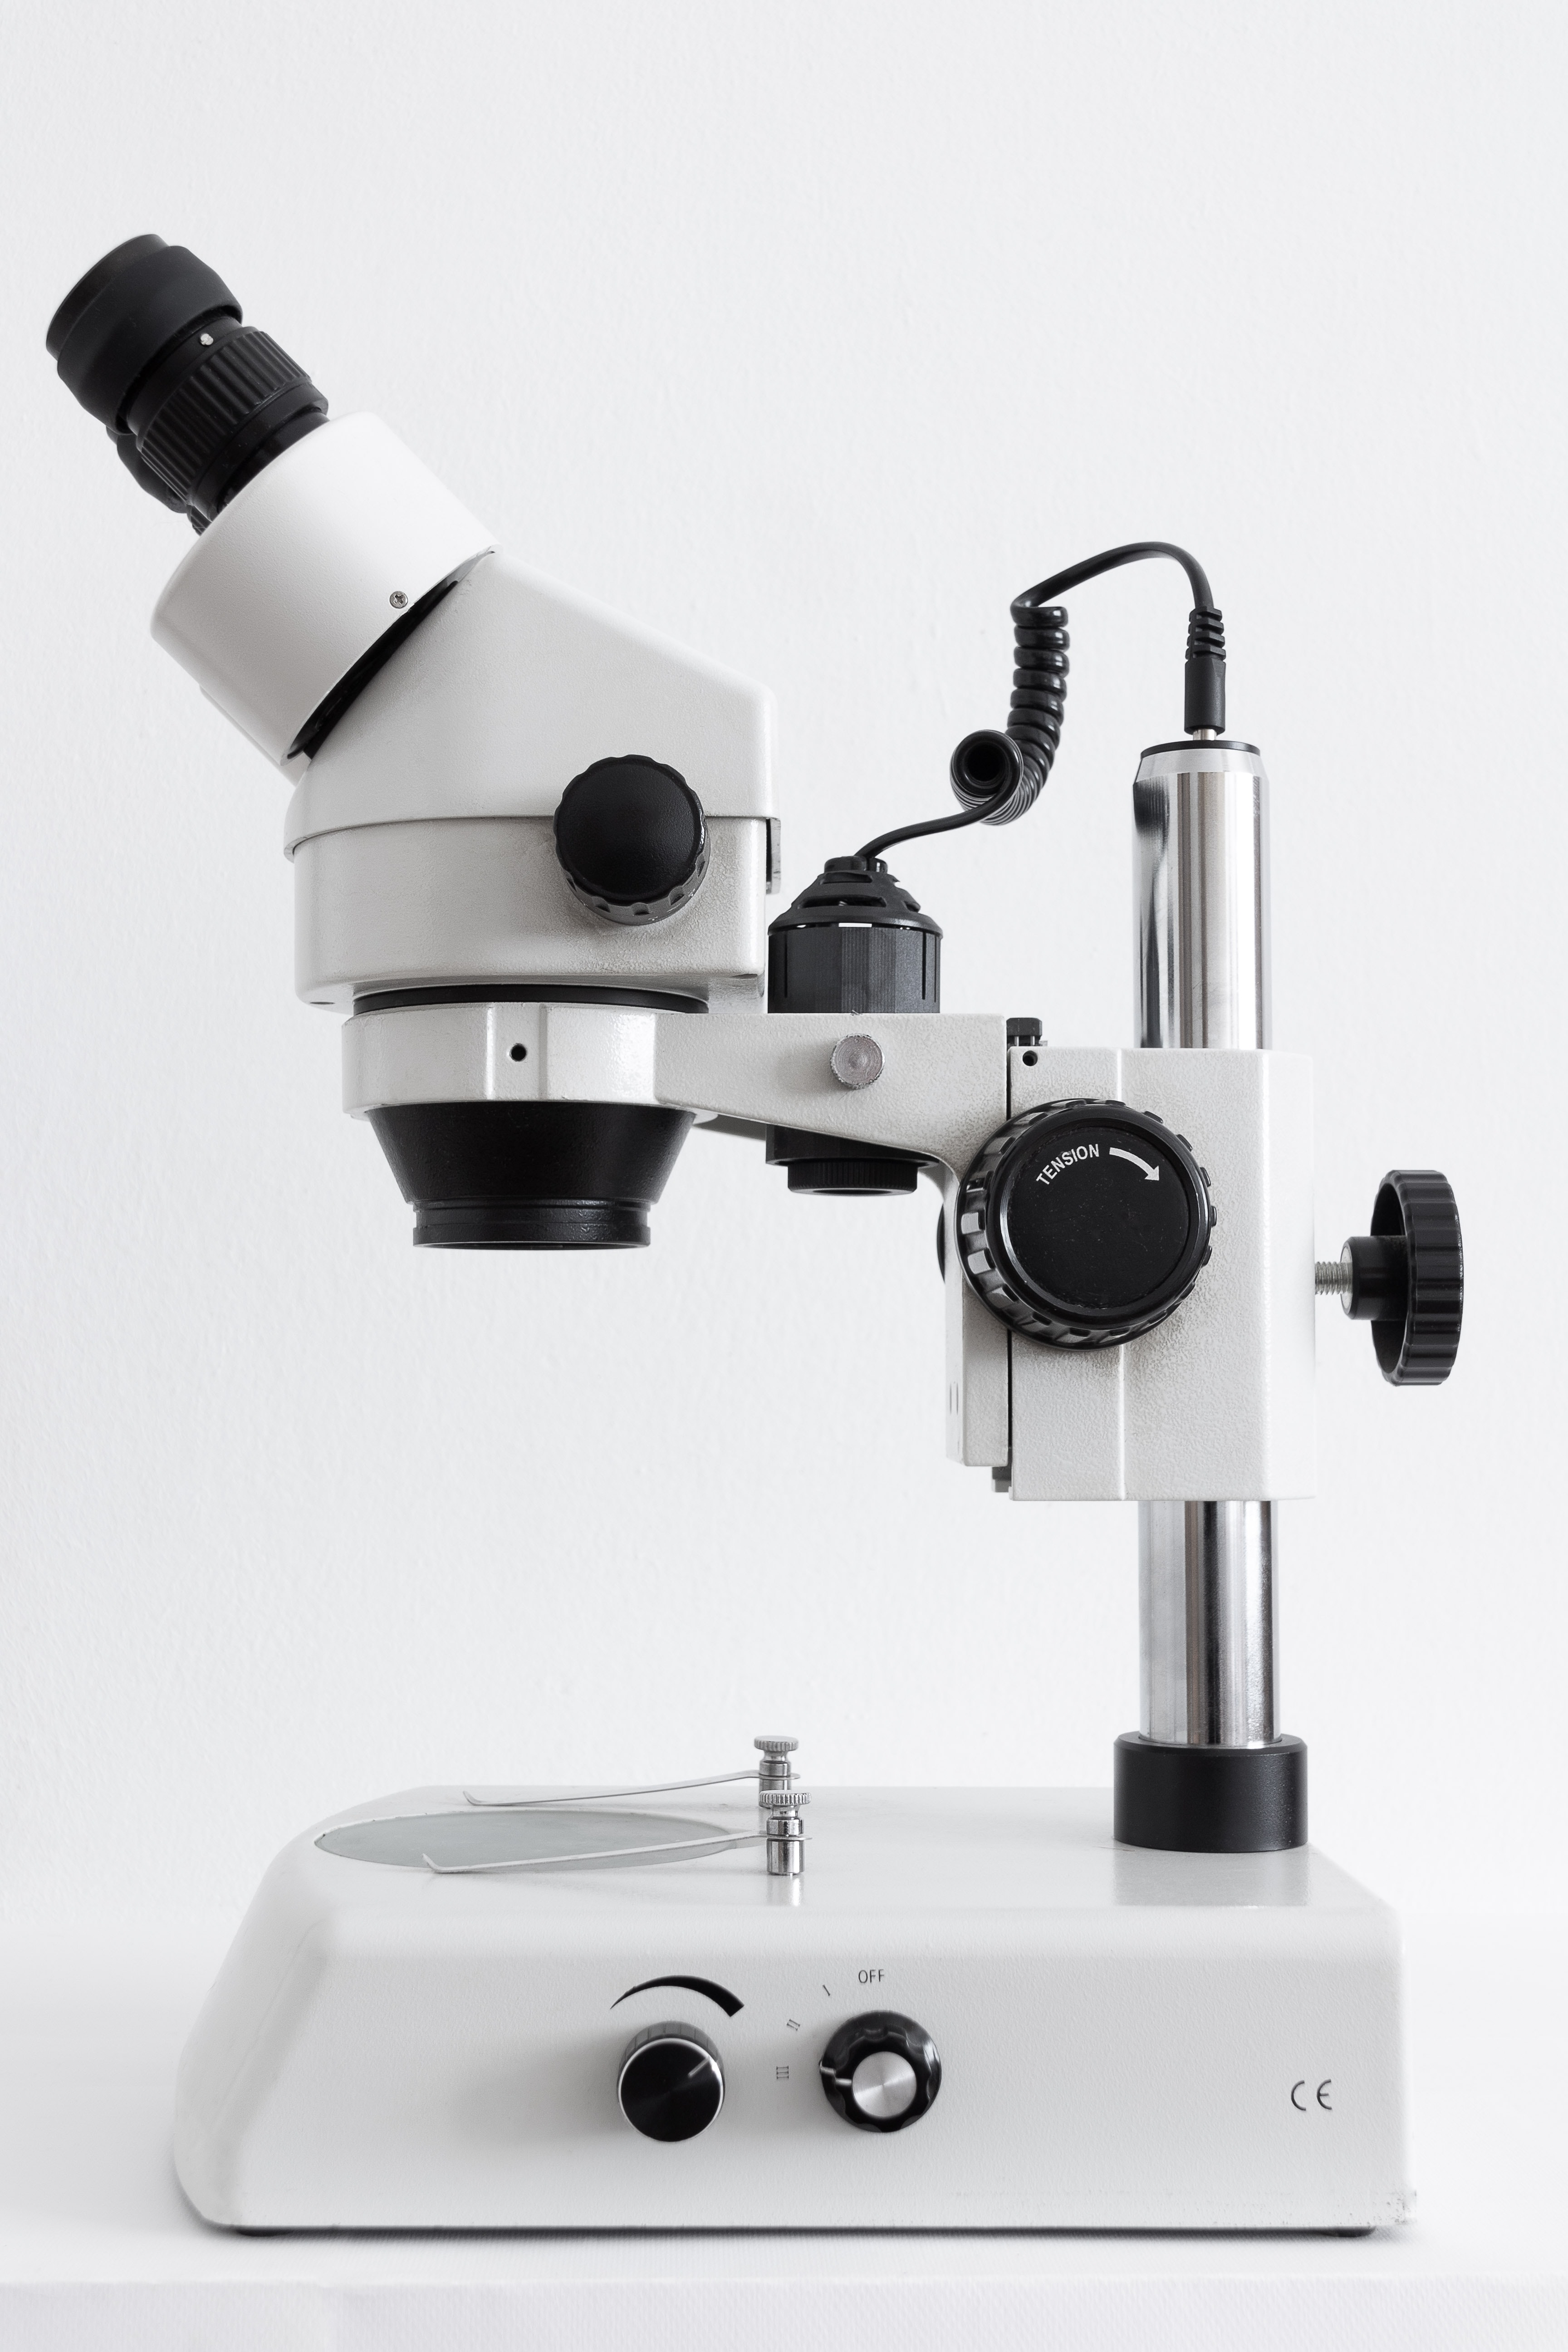 Just a photo of a microscope or more precisely a binocular. It's used for inspecting insects. I was allowed to photograph it but in return, I was supposed to clean it up. I did - mostly in Lightroom ;)